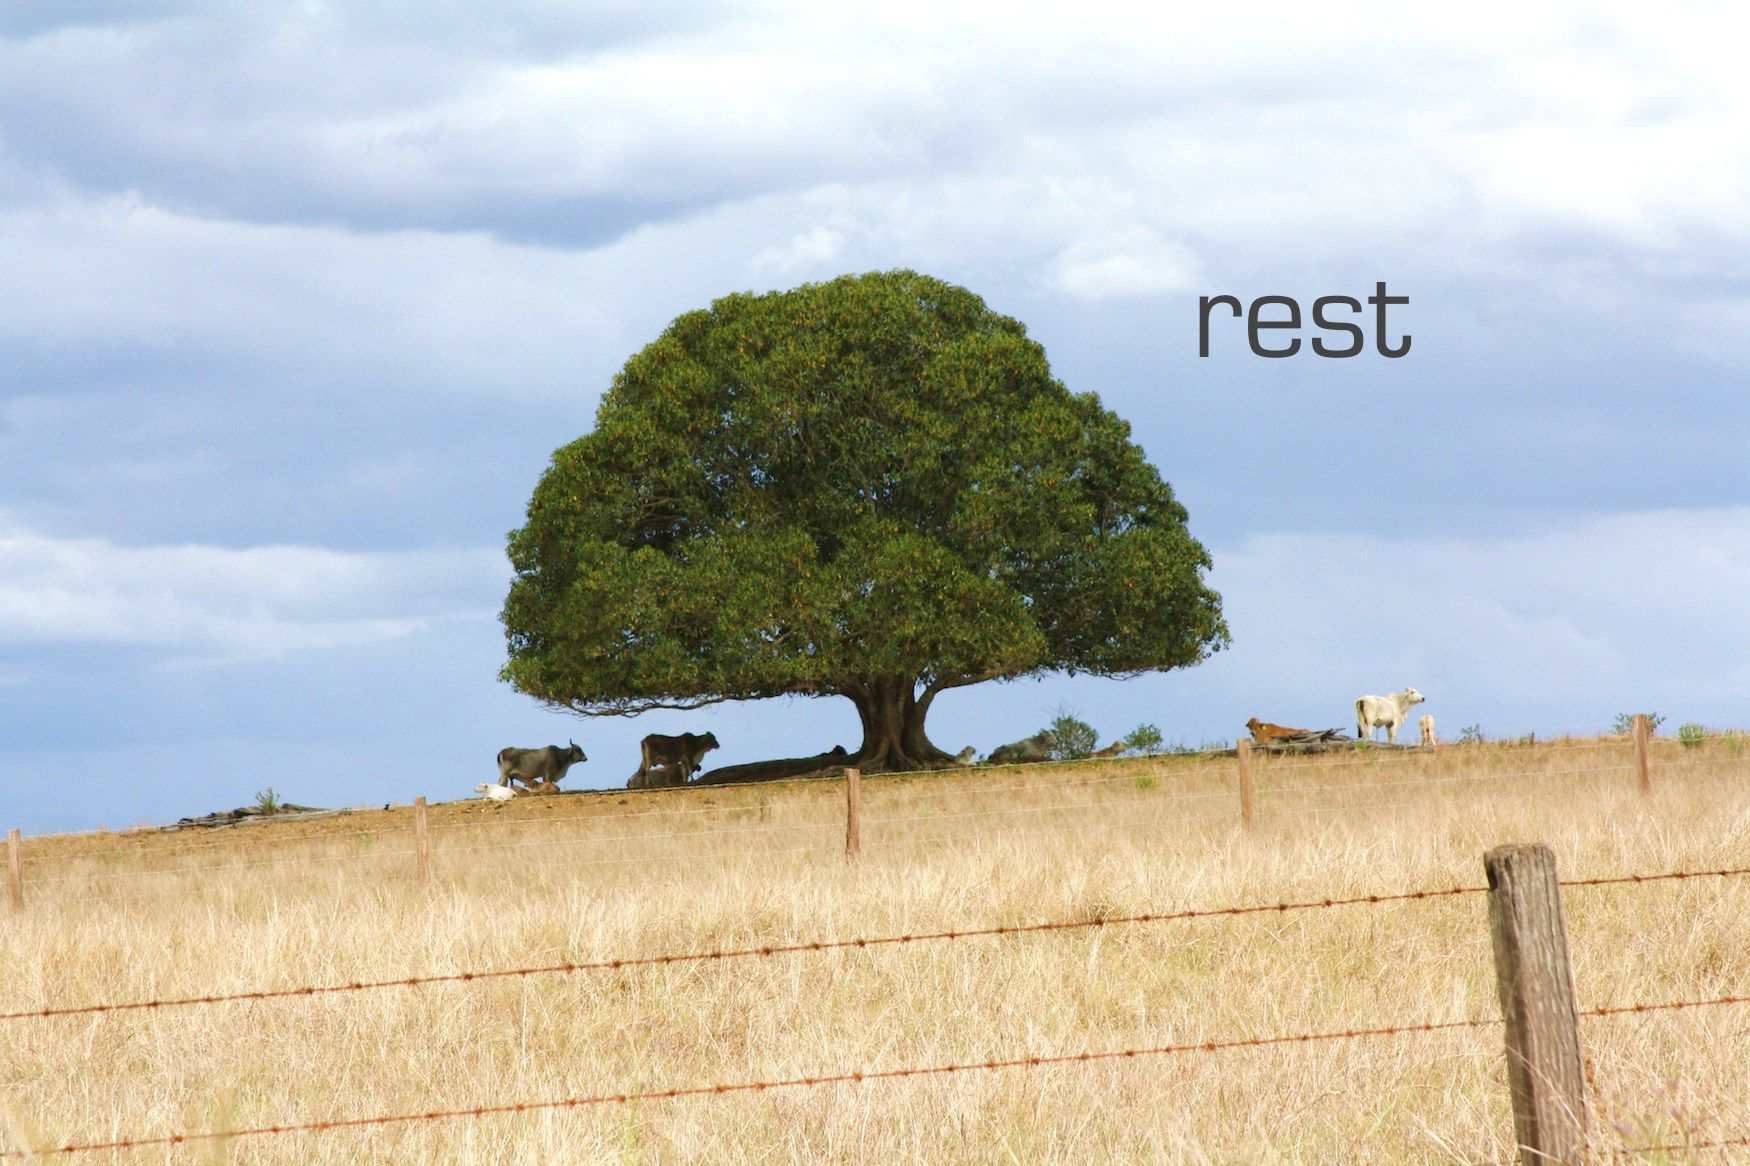 REST: by YES Psychology & Consulting. photo taken by Kash Thomson. www.yespsychology.com.au